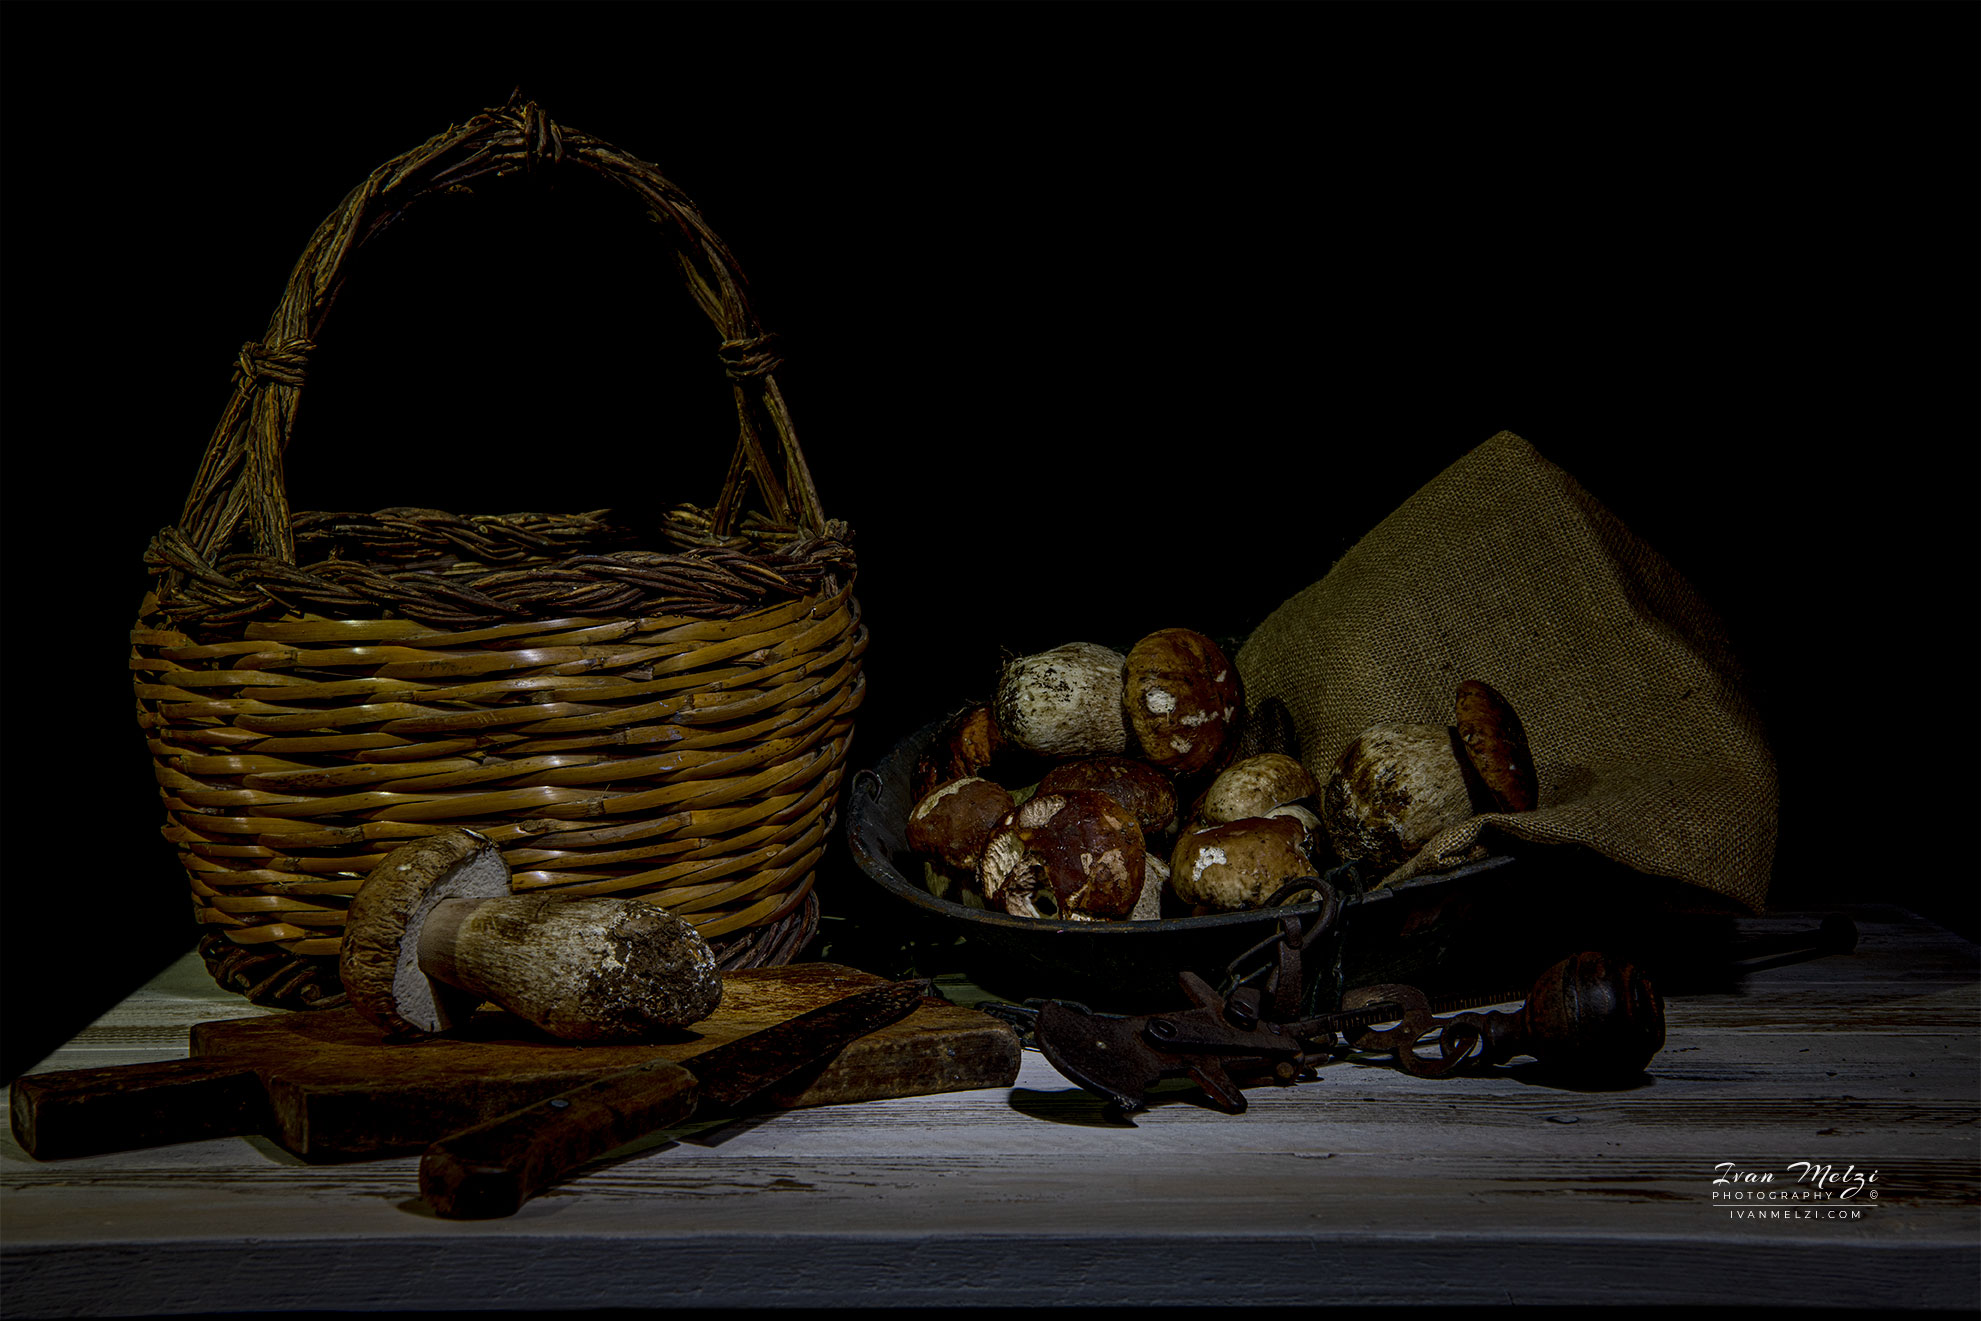 Categorie: Fine Art, Still Life & Food - Photographer: IVAN MELZI - Location: Cinisello Balsamo (MI)